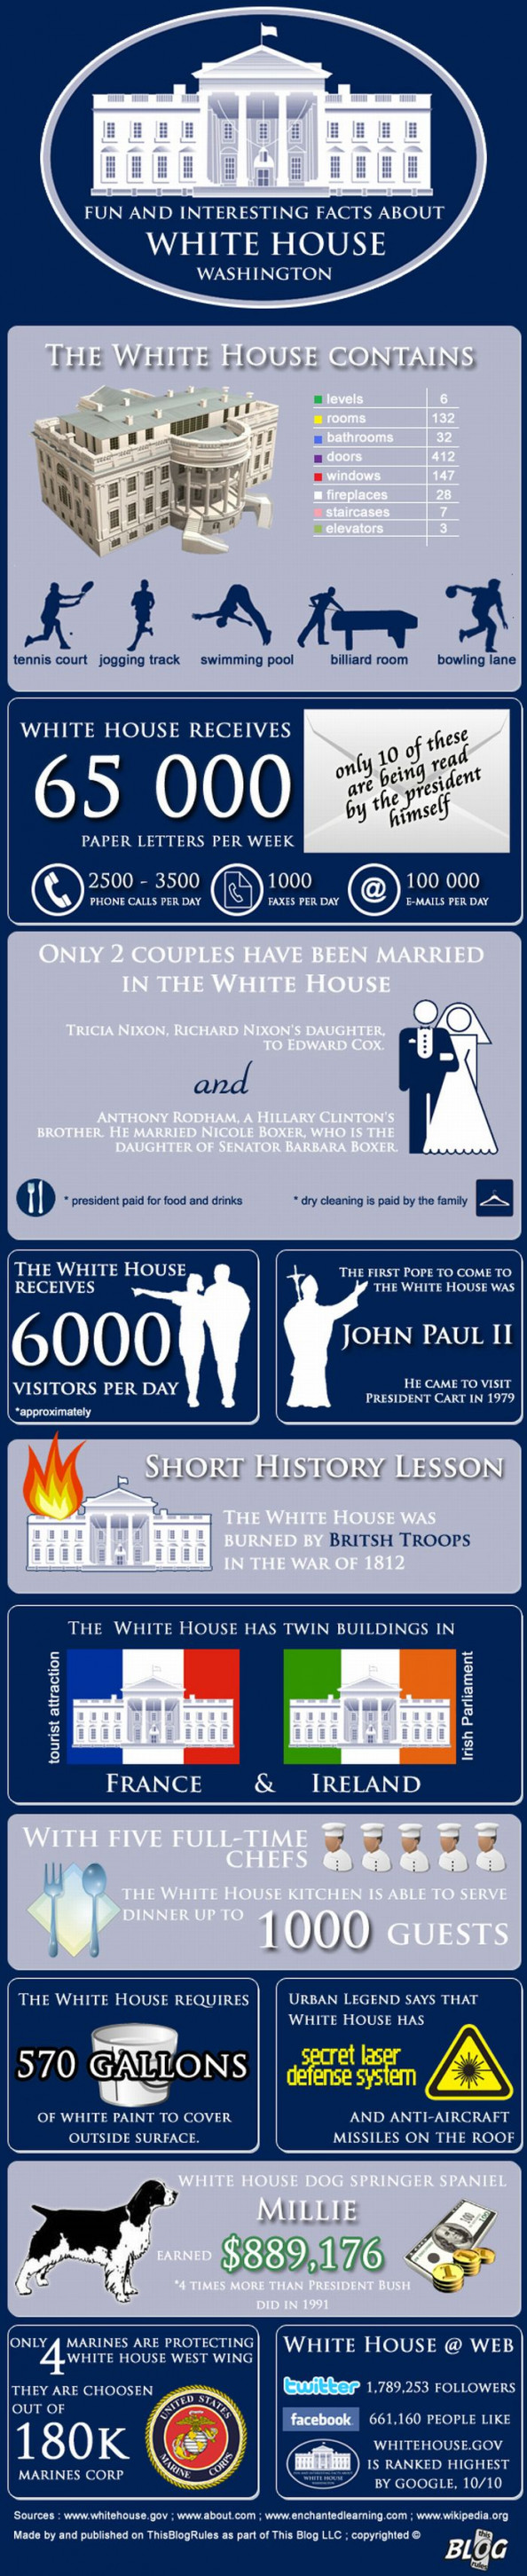 The White House: Fun and Interesting Facts Infographic